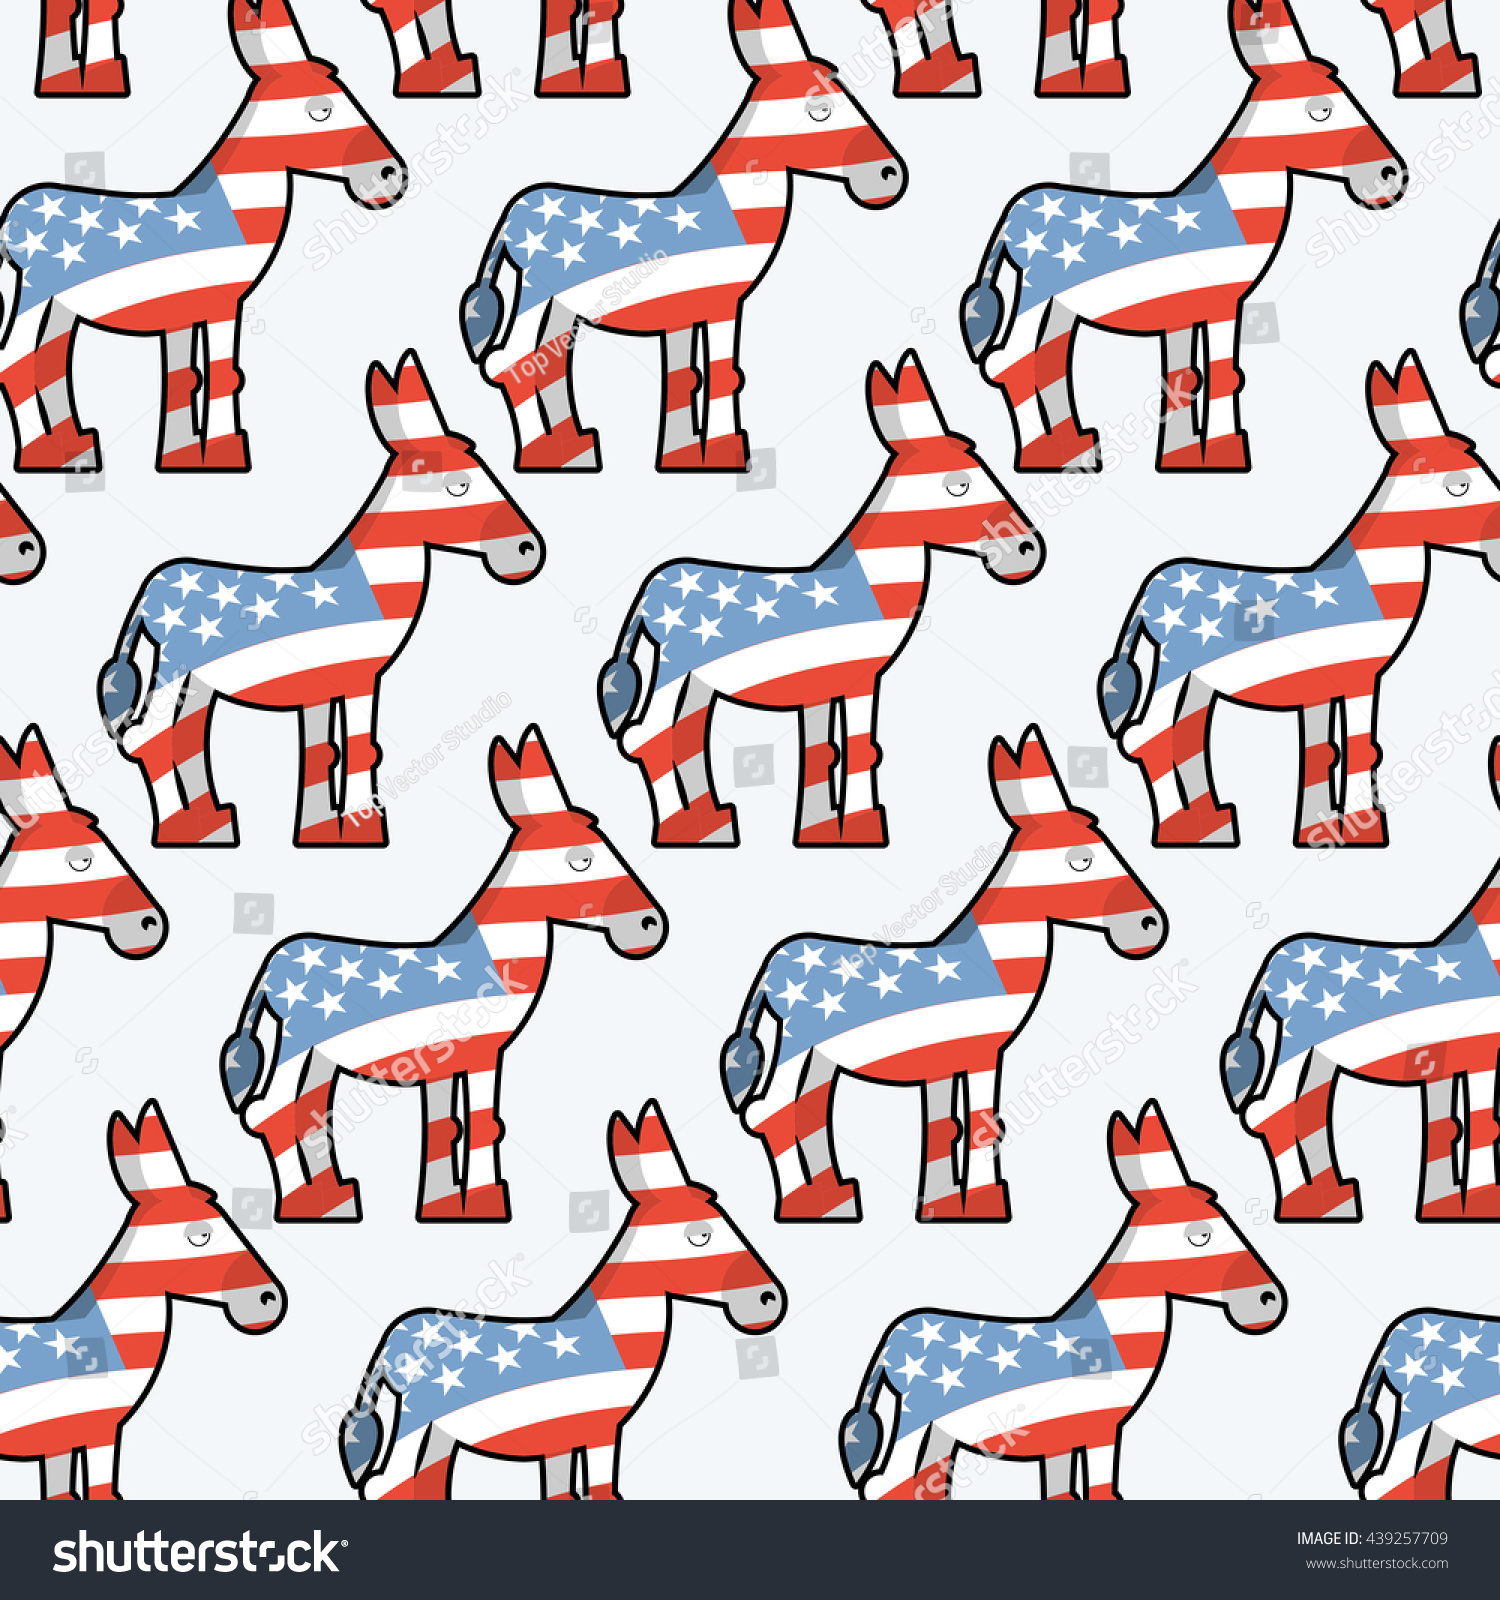 Democrat Donkey Seamless Pattern Animal Texture Stock Illustration